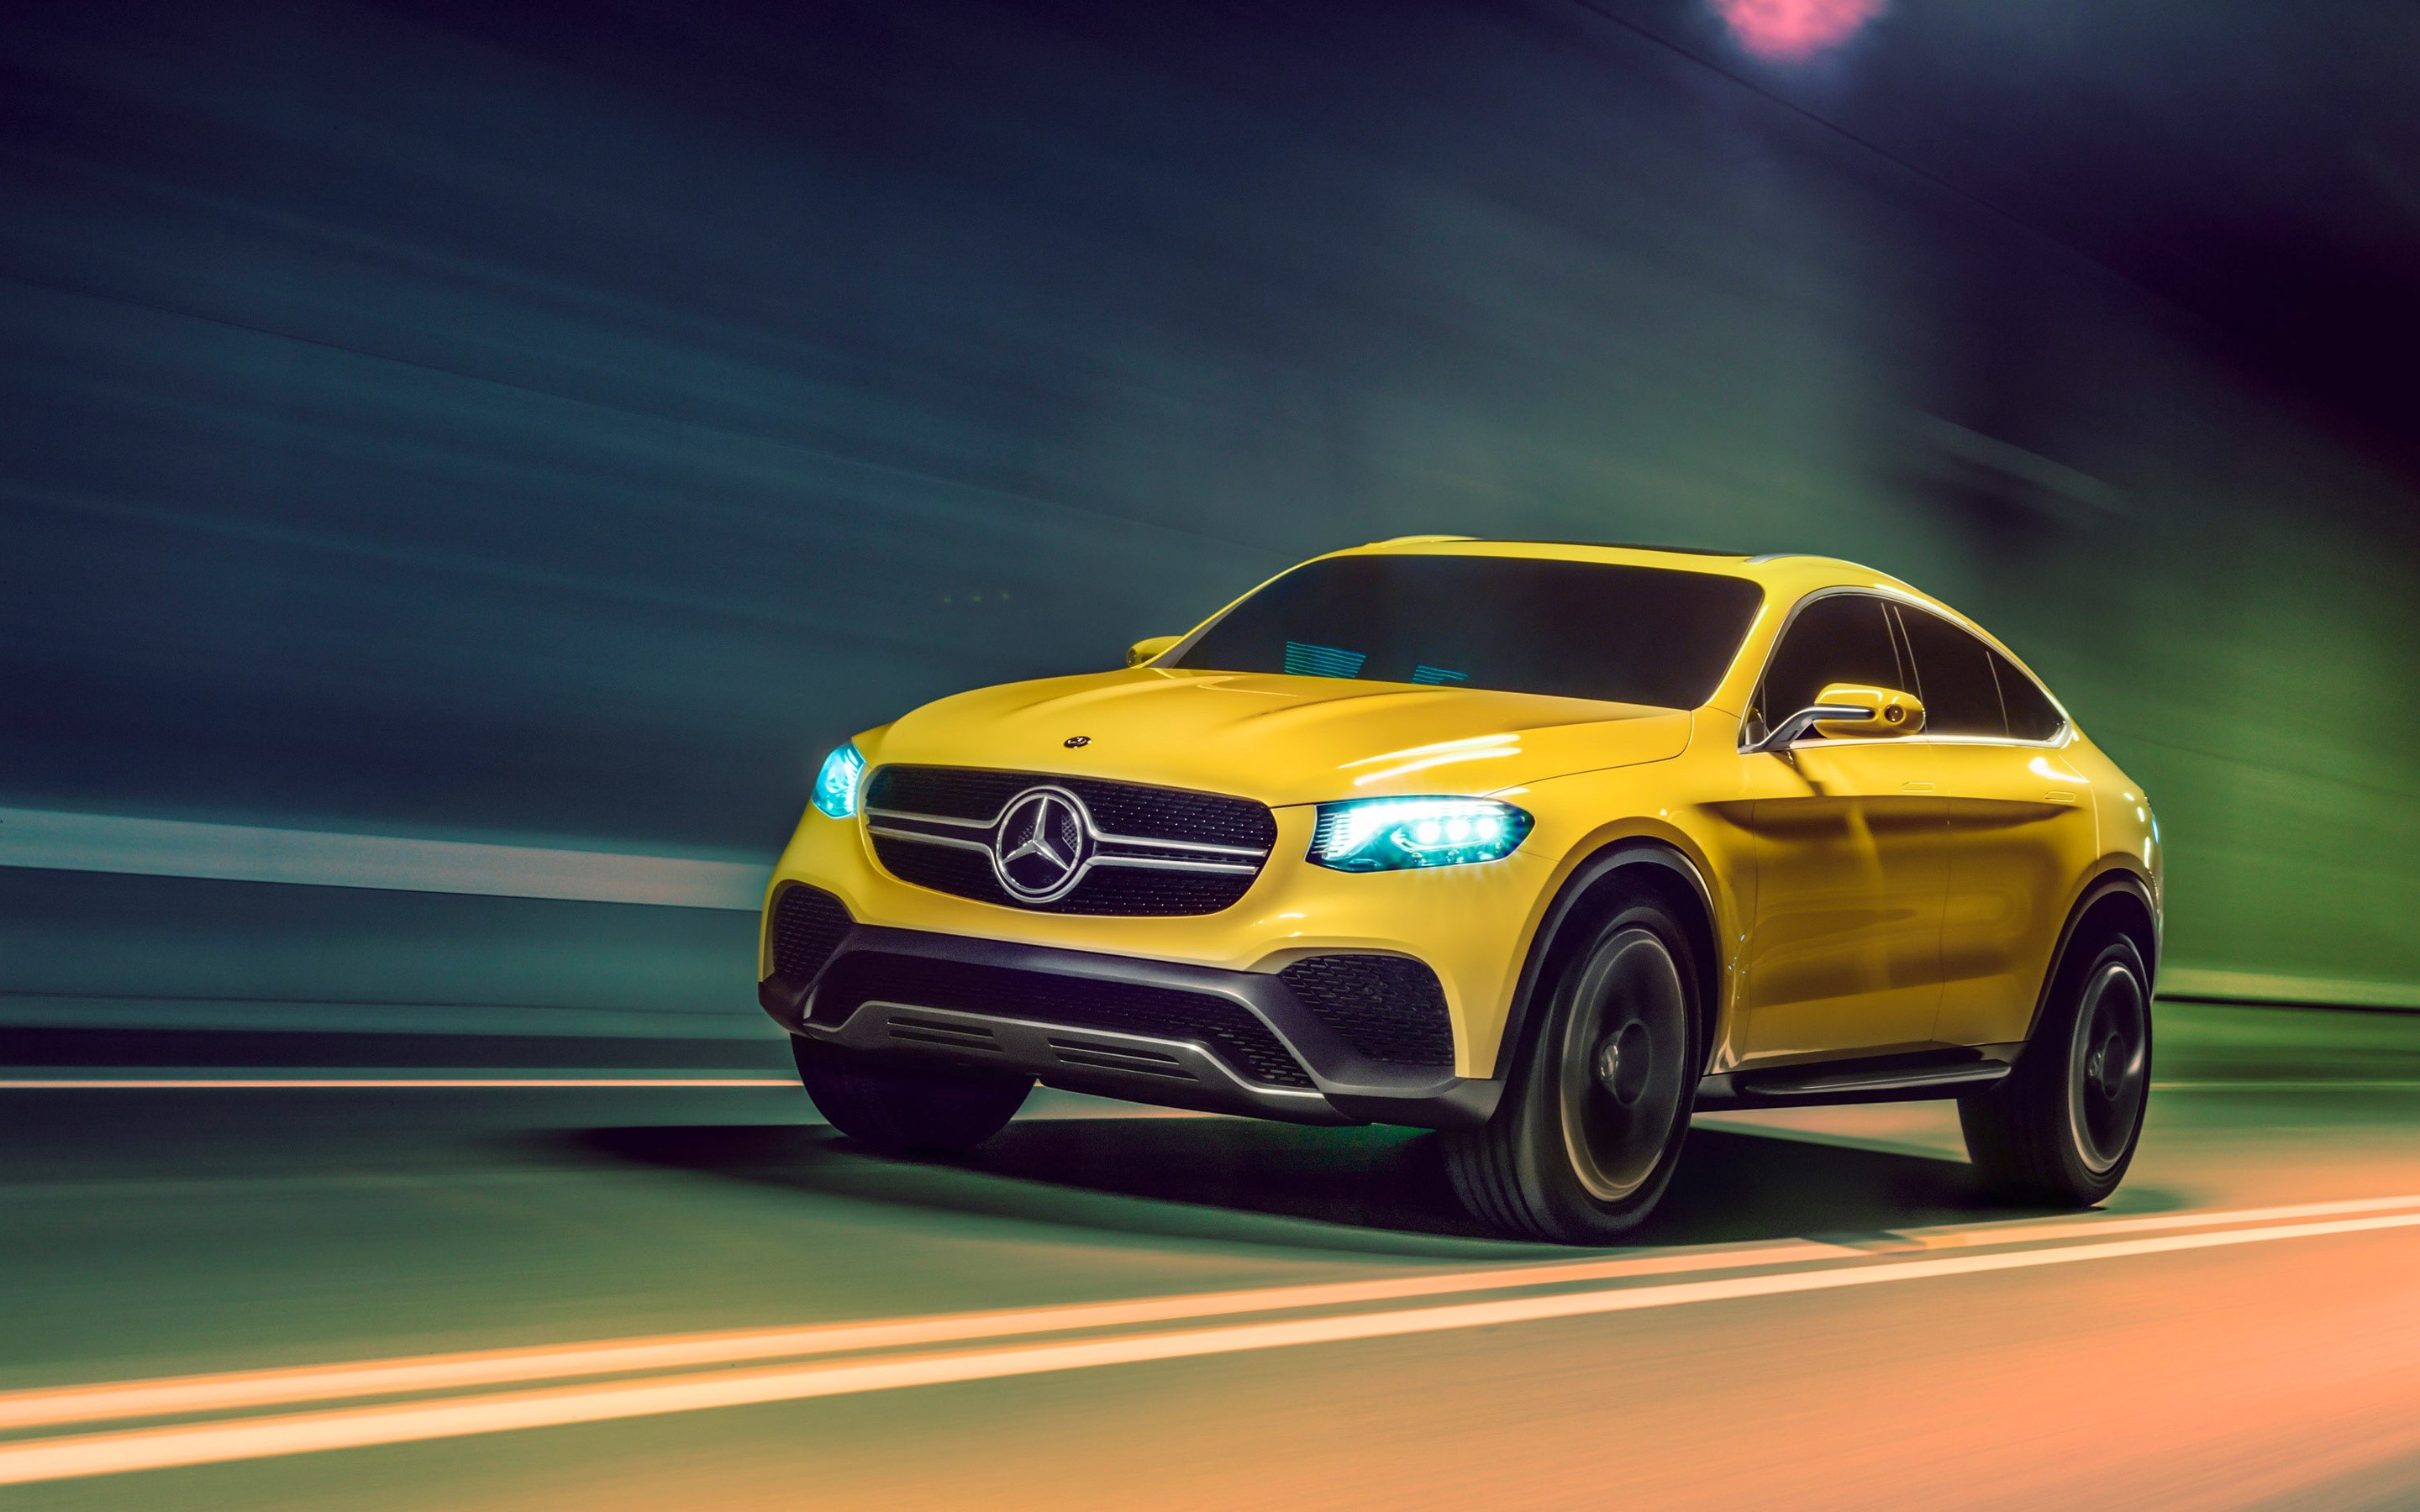 Wallpaper Mercedes Benz GLC Coupe Concept